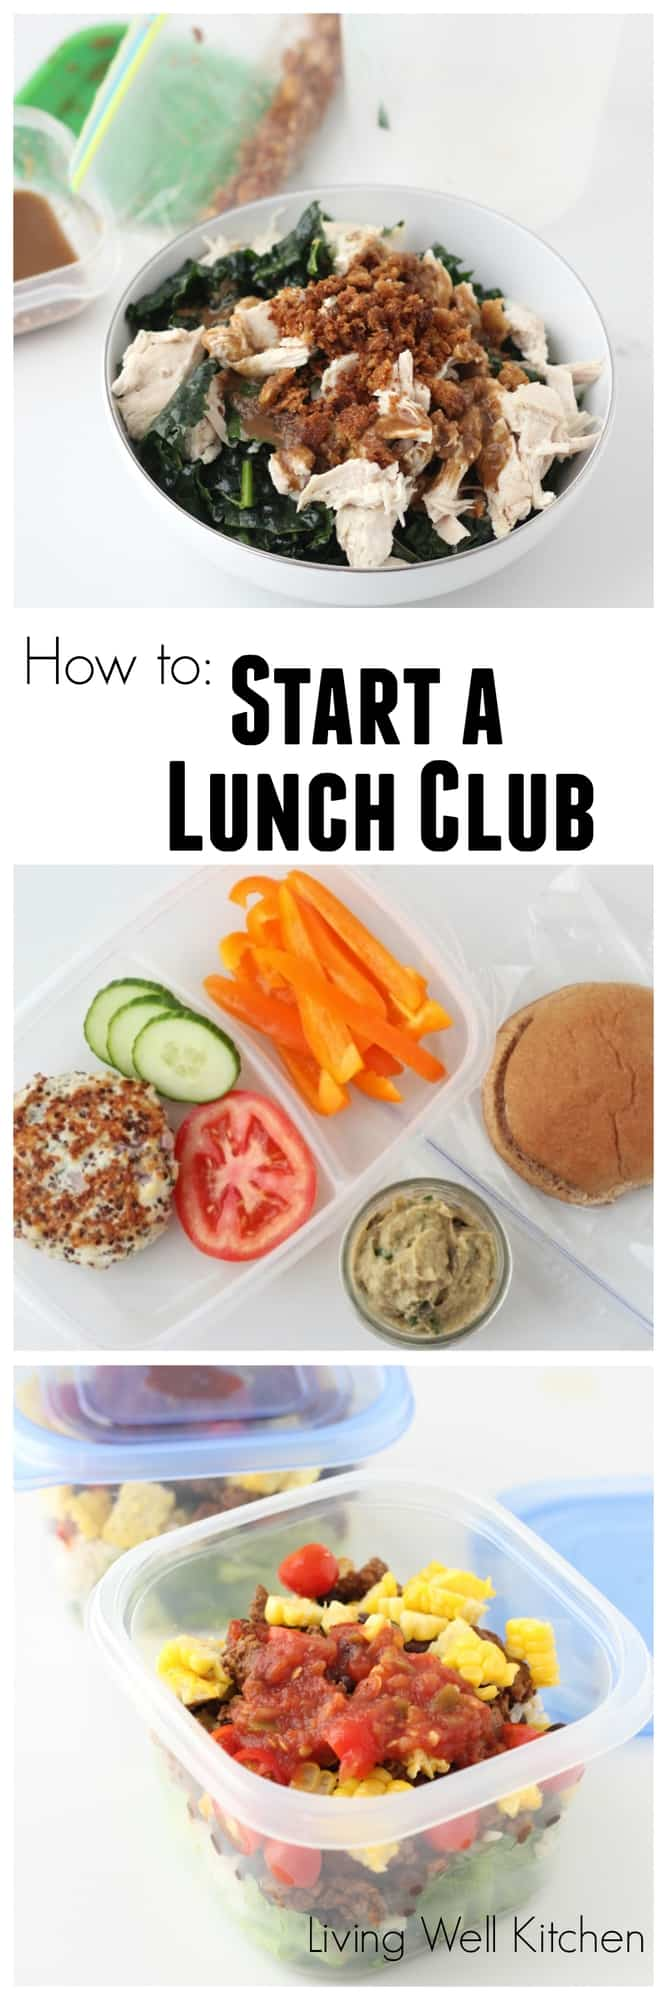 How to start a lunch club from meme living well kitchen quit